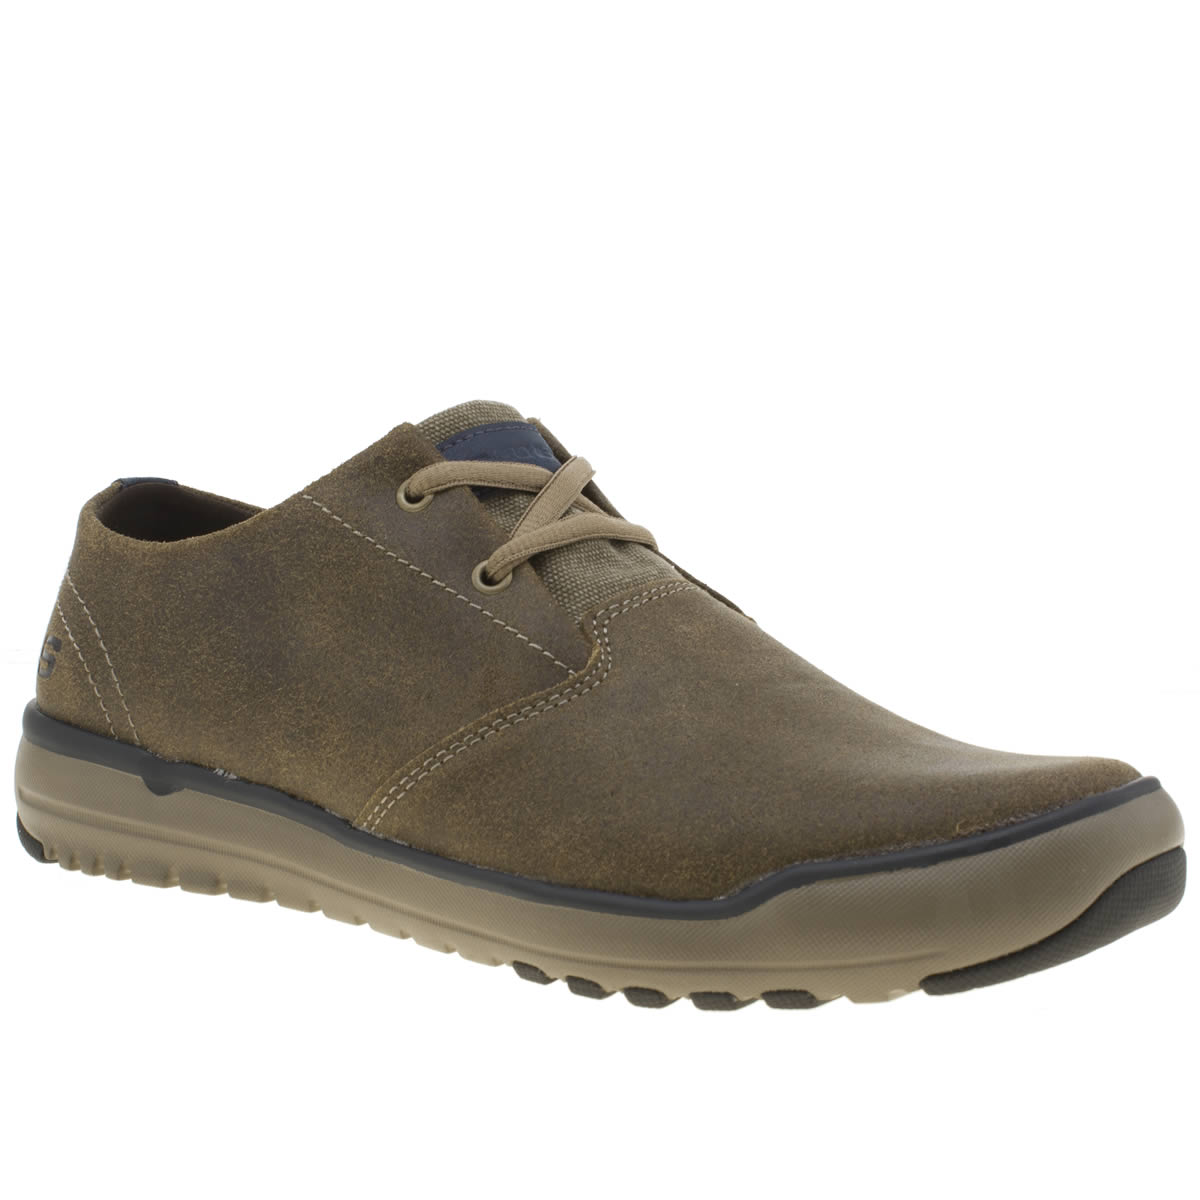 Mens Shoes Sale | Cheap Brogues, Loafers, Boat Shoes & More | schuh